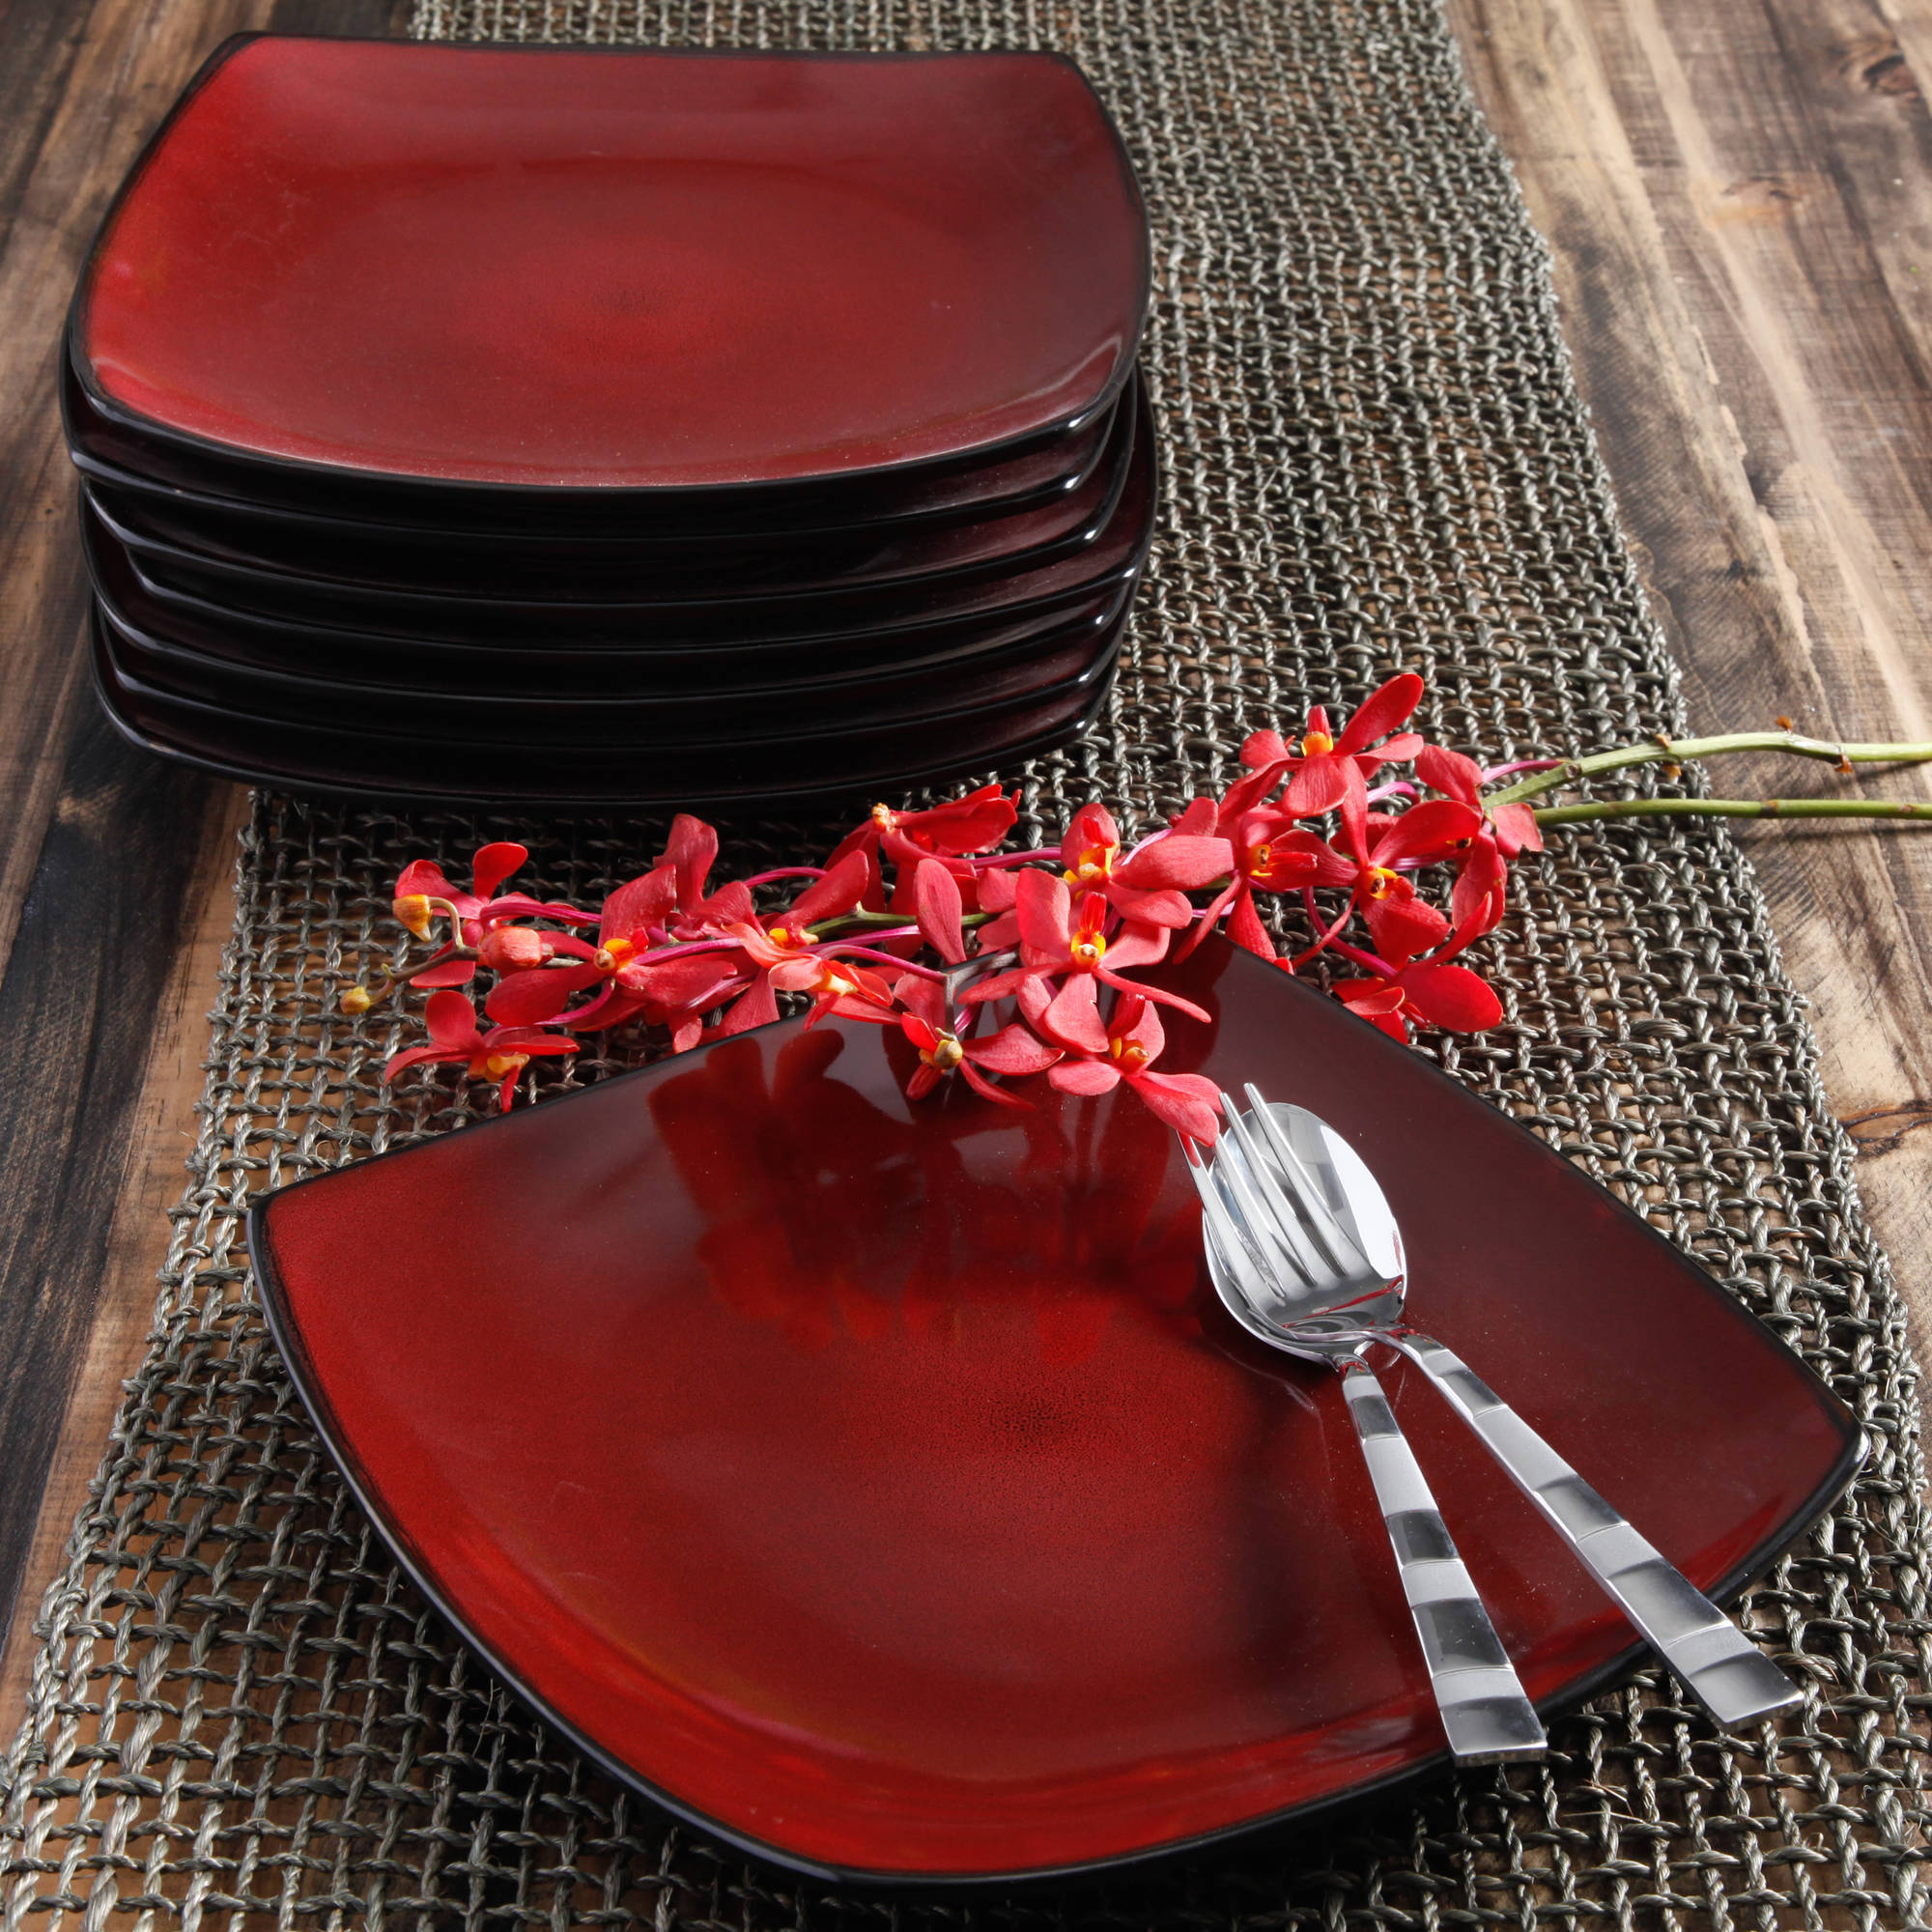 Gibson Home 10.5  Square Dinner Plates Red 8 Piece New Dinnerware Kit  & Gibson Home 10.5